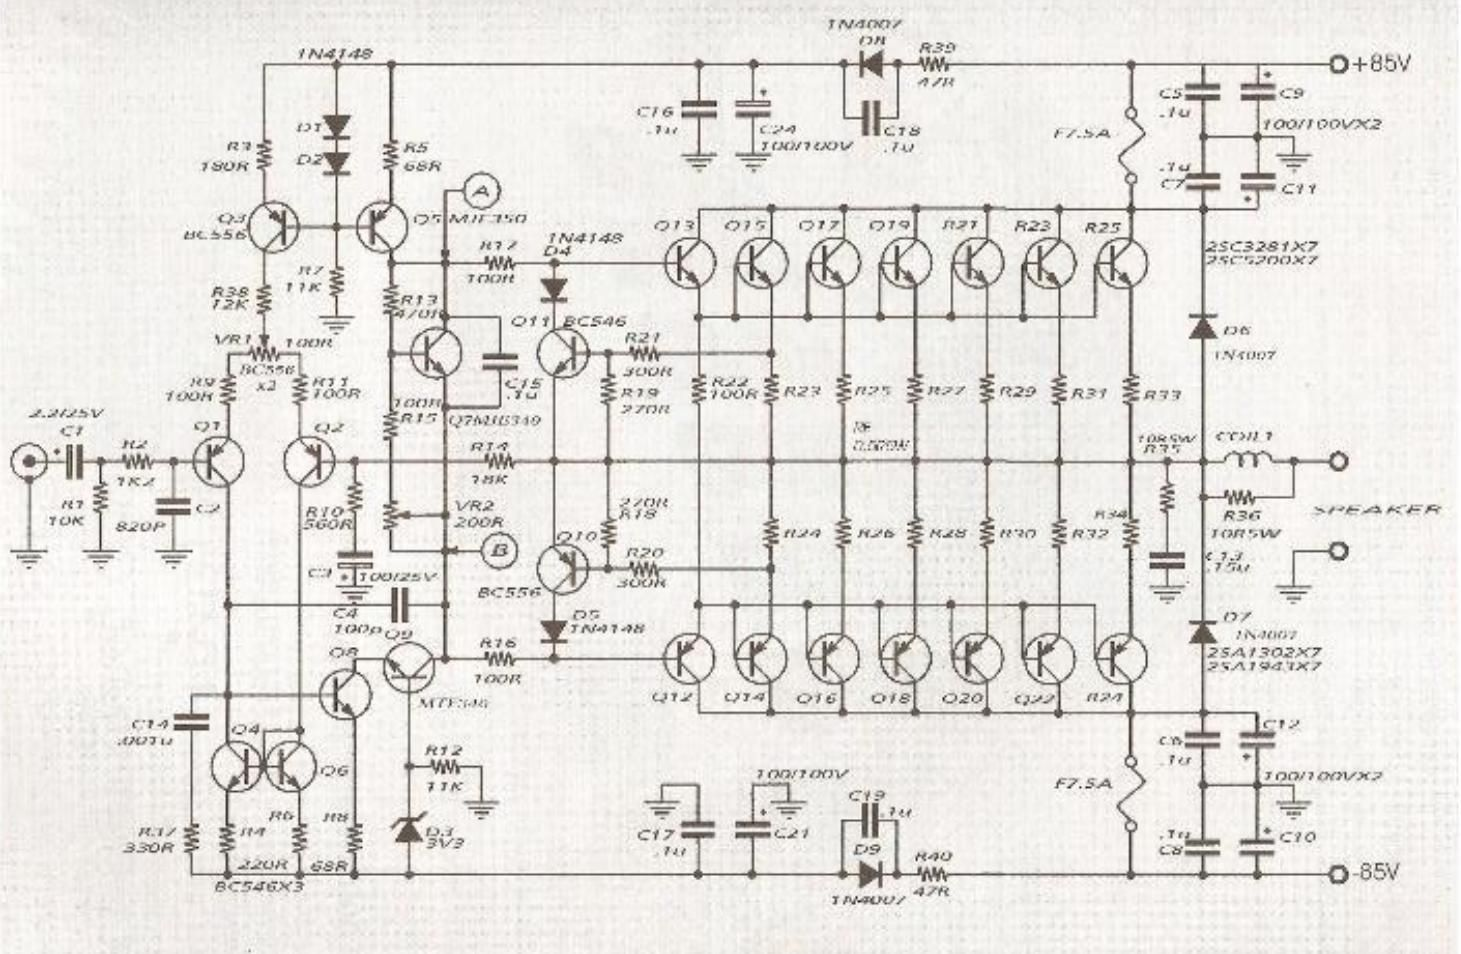 2000w audio amplifier circuit diagram